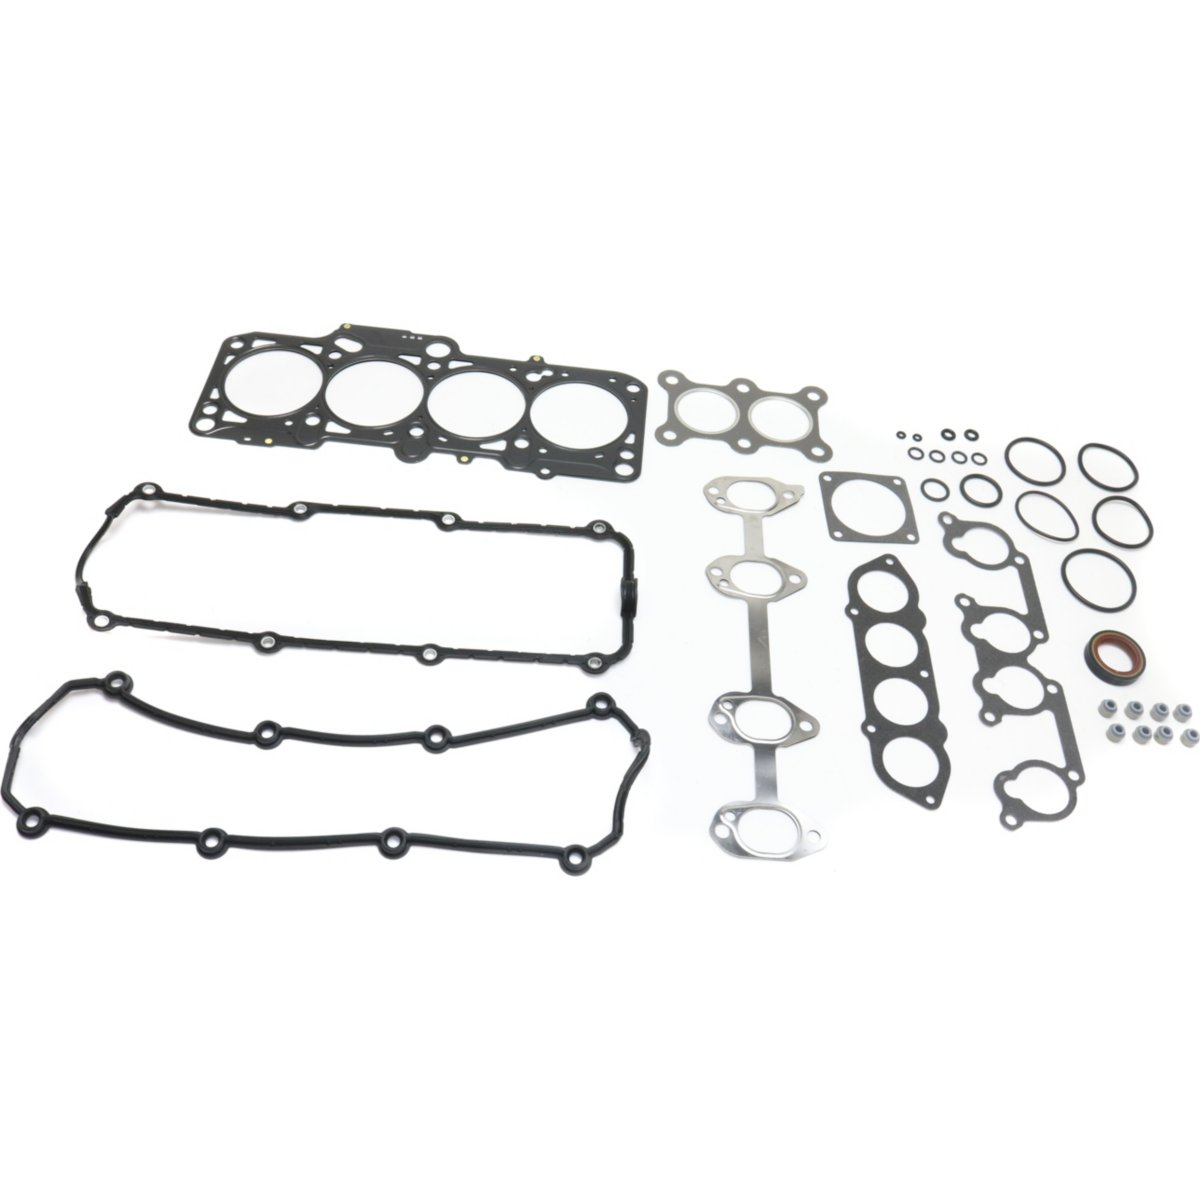 Head Gasket Set New VW Volkswagen Golf Jetta Beetle 2001